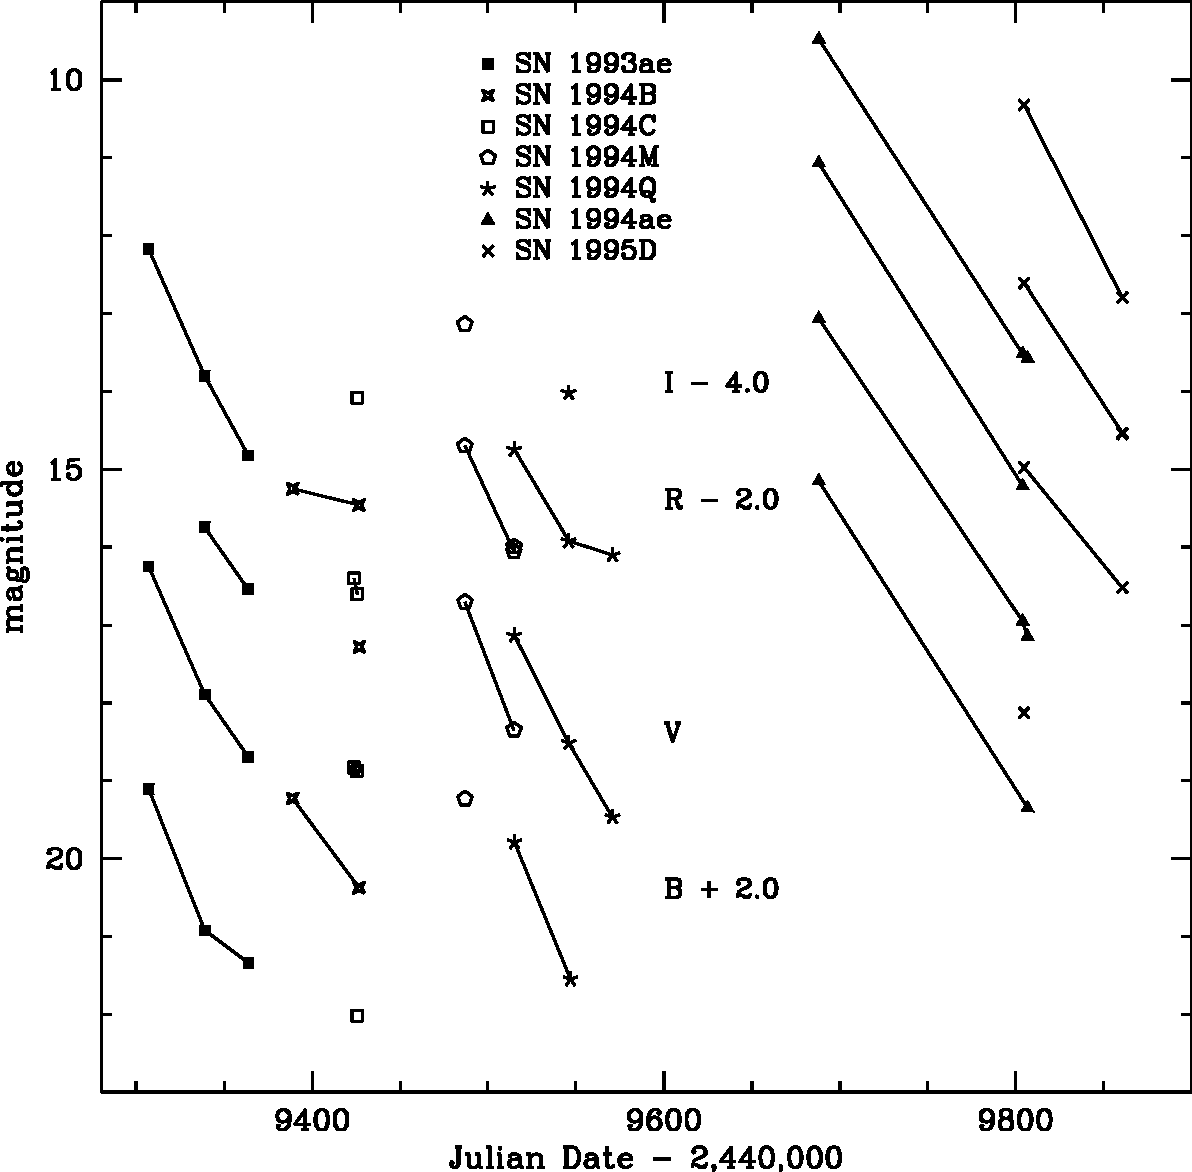 Fig. 13.— BV RI light curves of Type Ia supernovae. The line segments connecting the points have no significance other than to aid in distinguishing between different objects and in indicating general trends. There are no B measurements for SN 1994B.